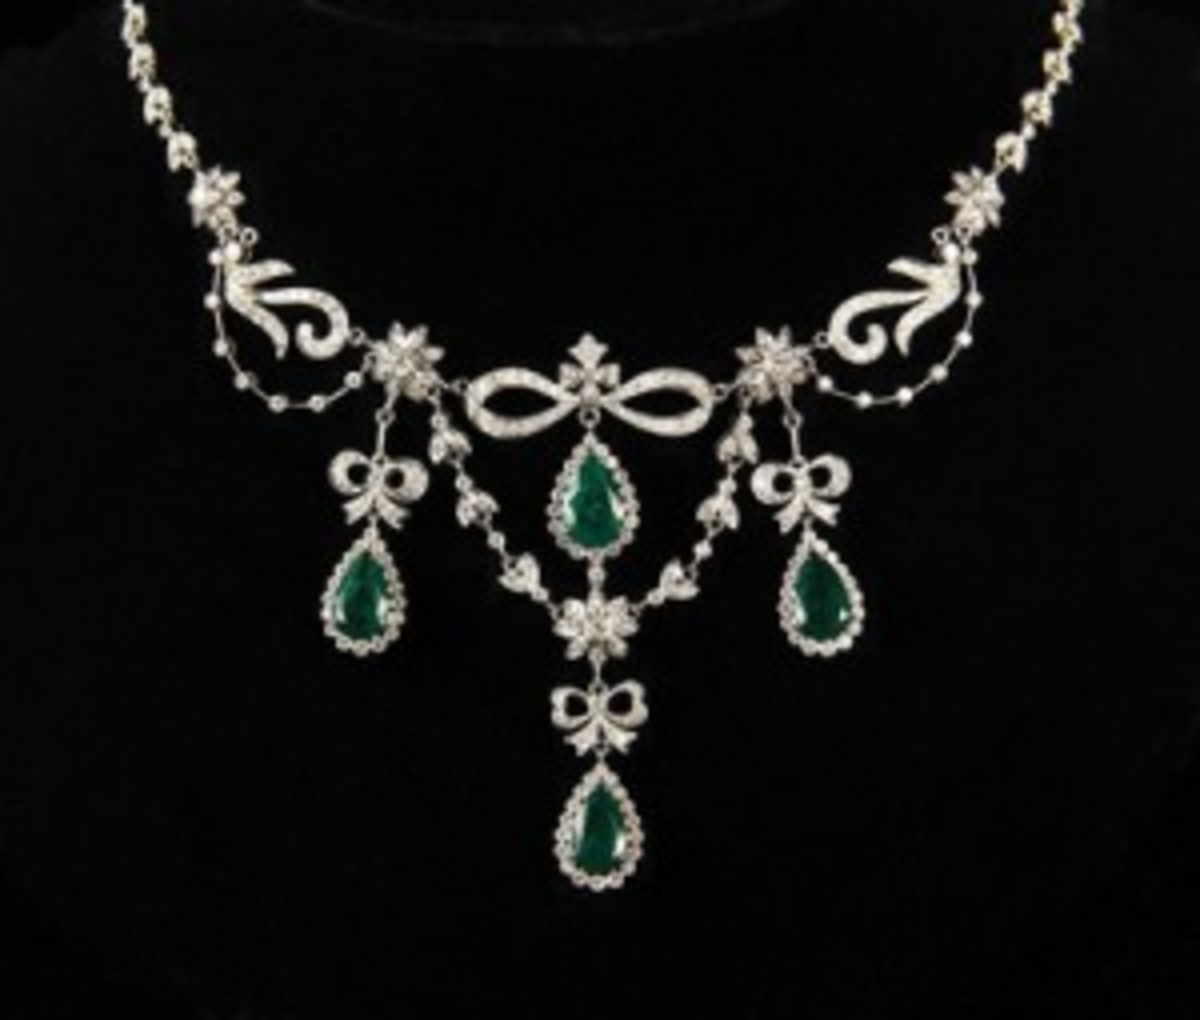 White gold, emerald necklace